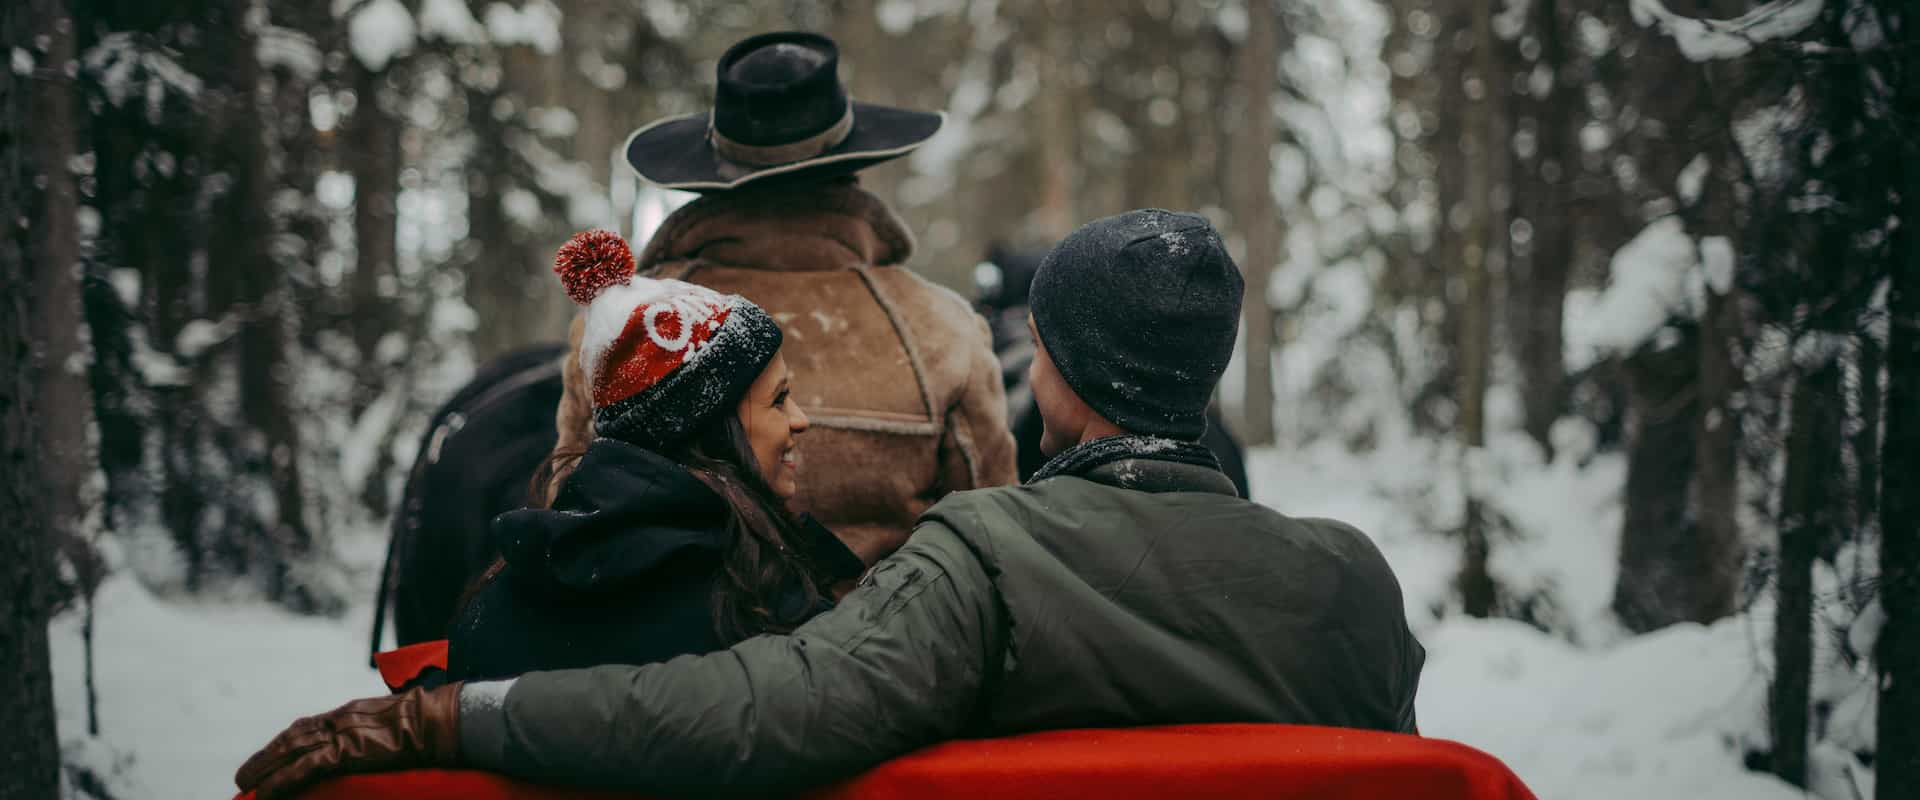 Take a winter sleigh ride at Lake Louise on the Discover Lake Louise winter tour with Discover Banff Tours